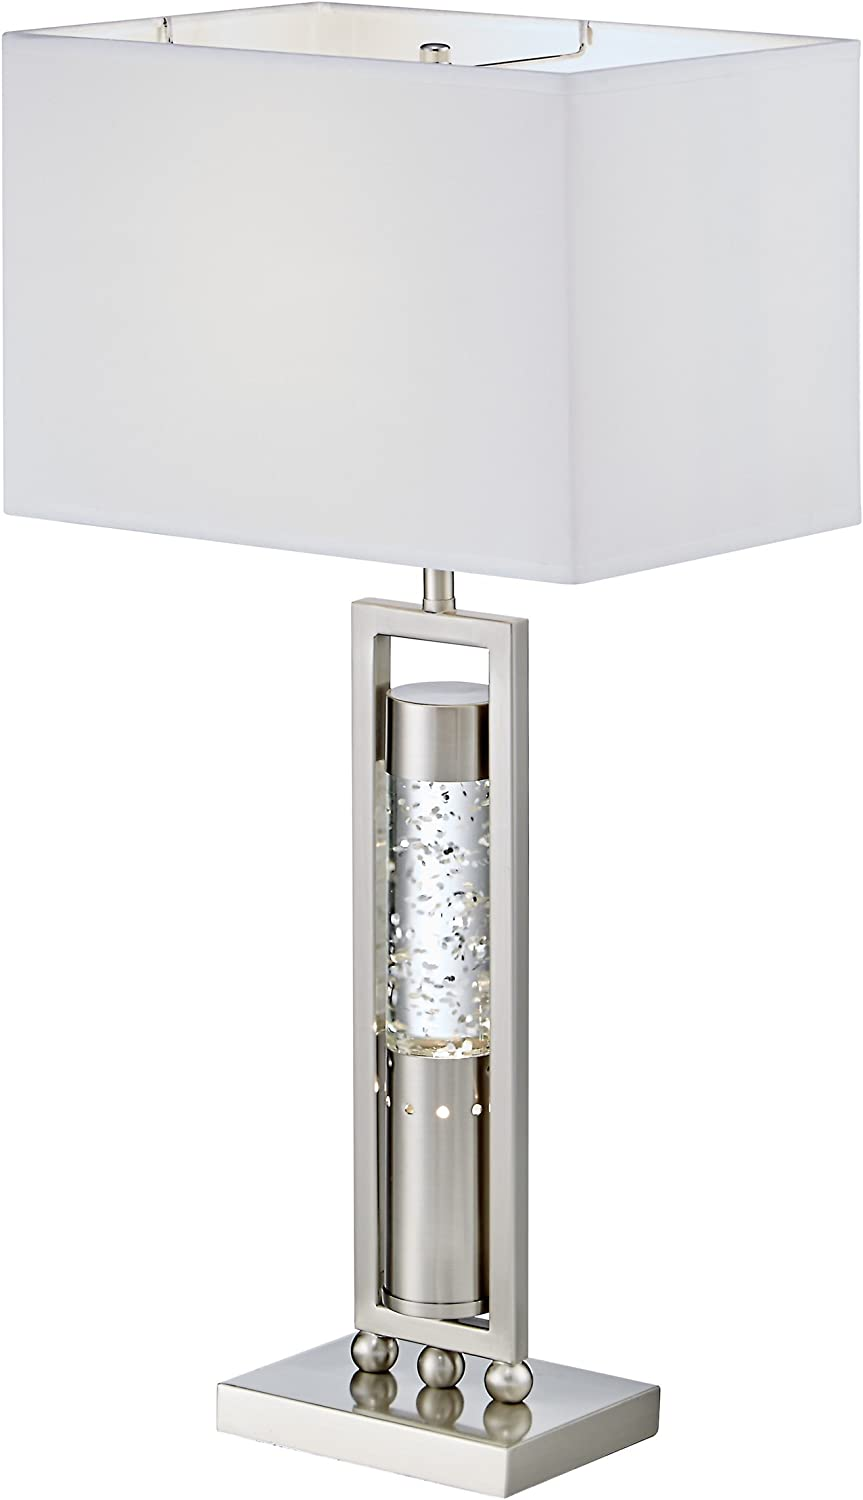 Amazon Com Homelegance Satin Nickel Metal Finish Table Lamp With Sparkling Decorative Drop Dancing Water Mood Night Light Top Home Kitchen